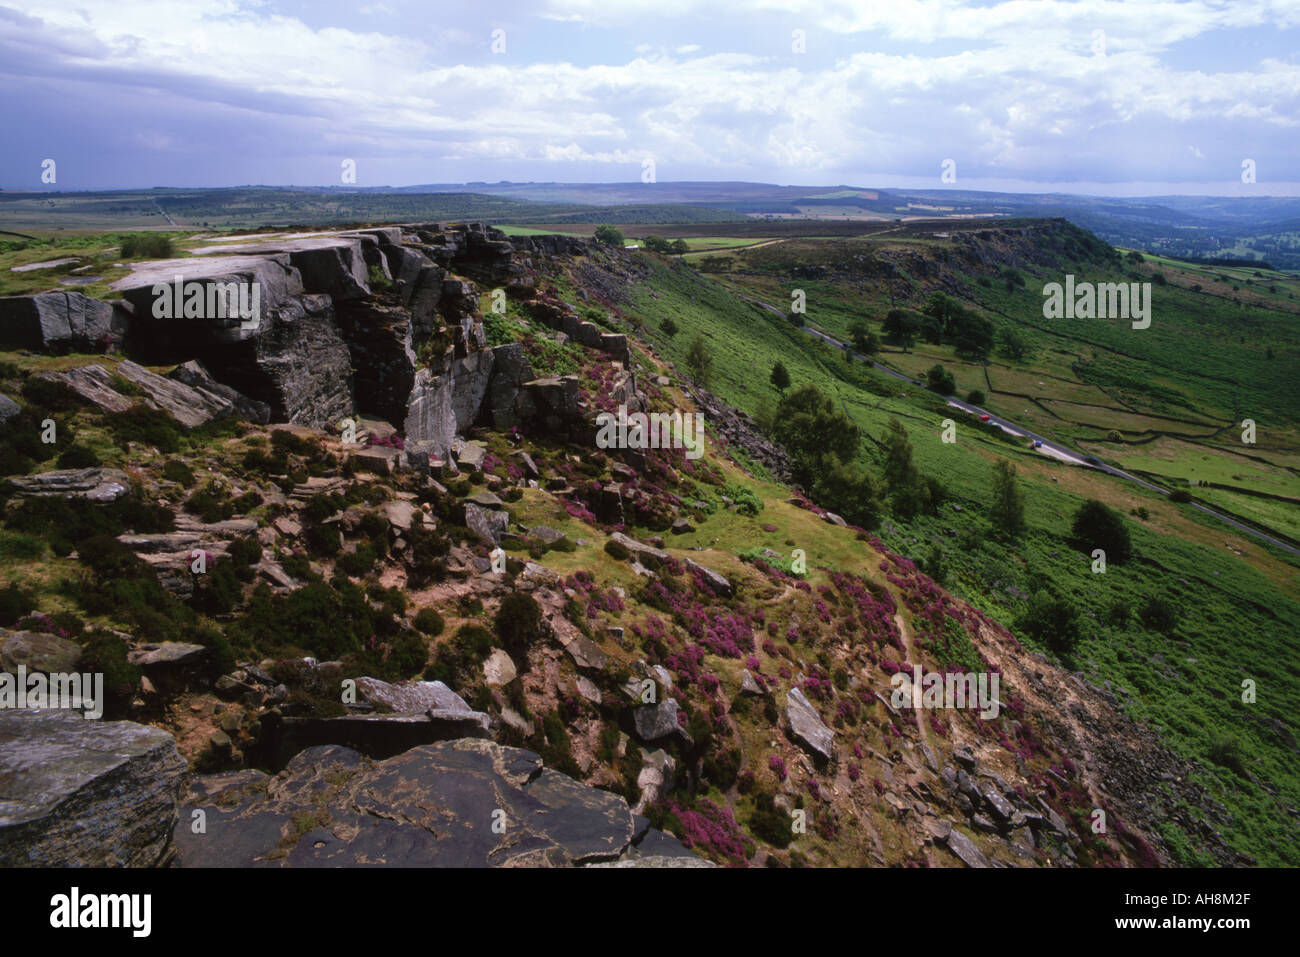 Froggatt Edge in the Peak District. Popular with climbers, hikers, hangliders and paragliders - Stock Image